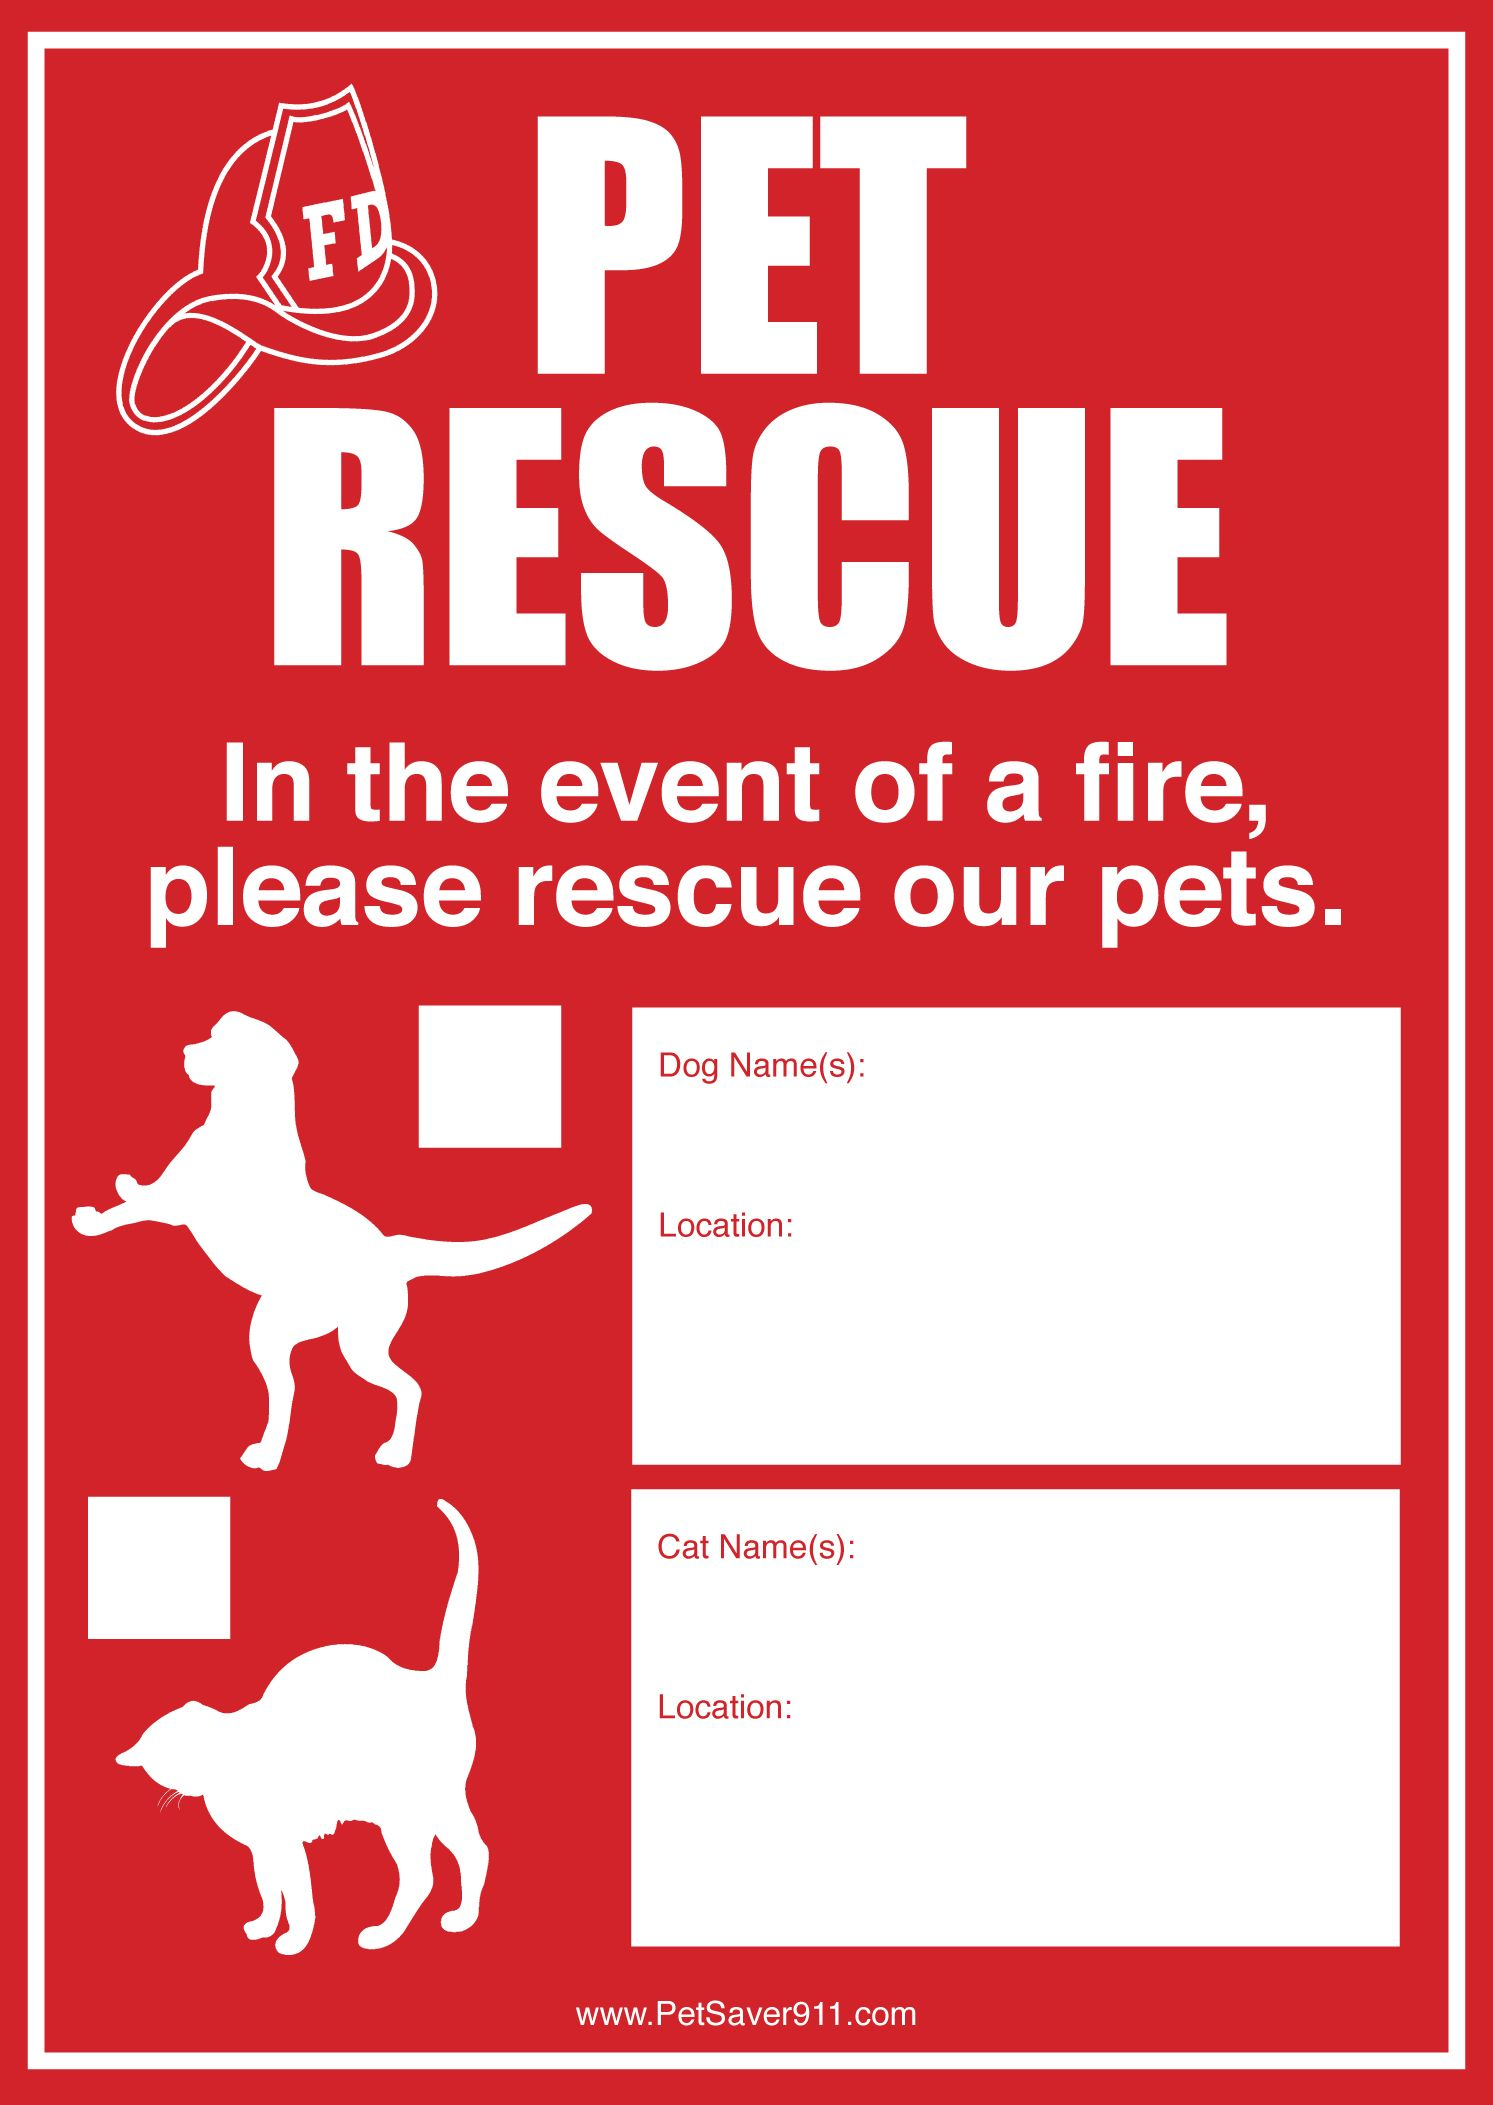 Help firefighters locate and rescue your pets when you're